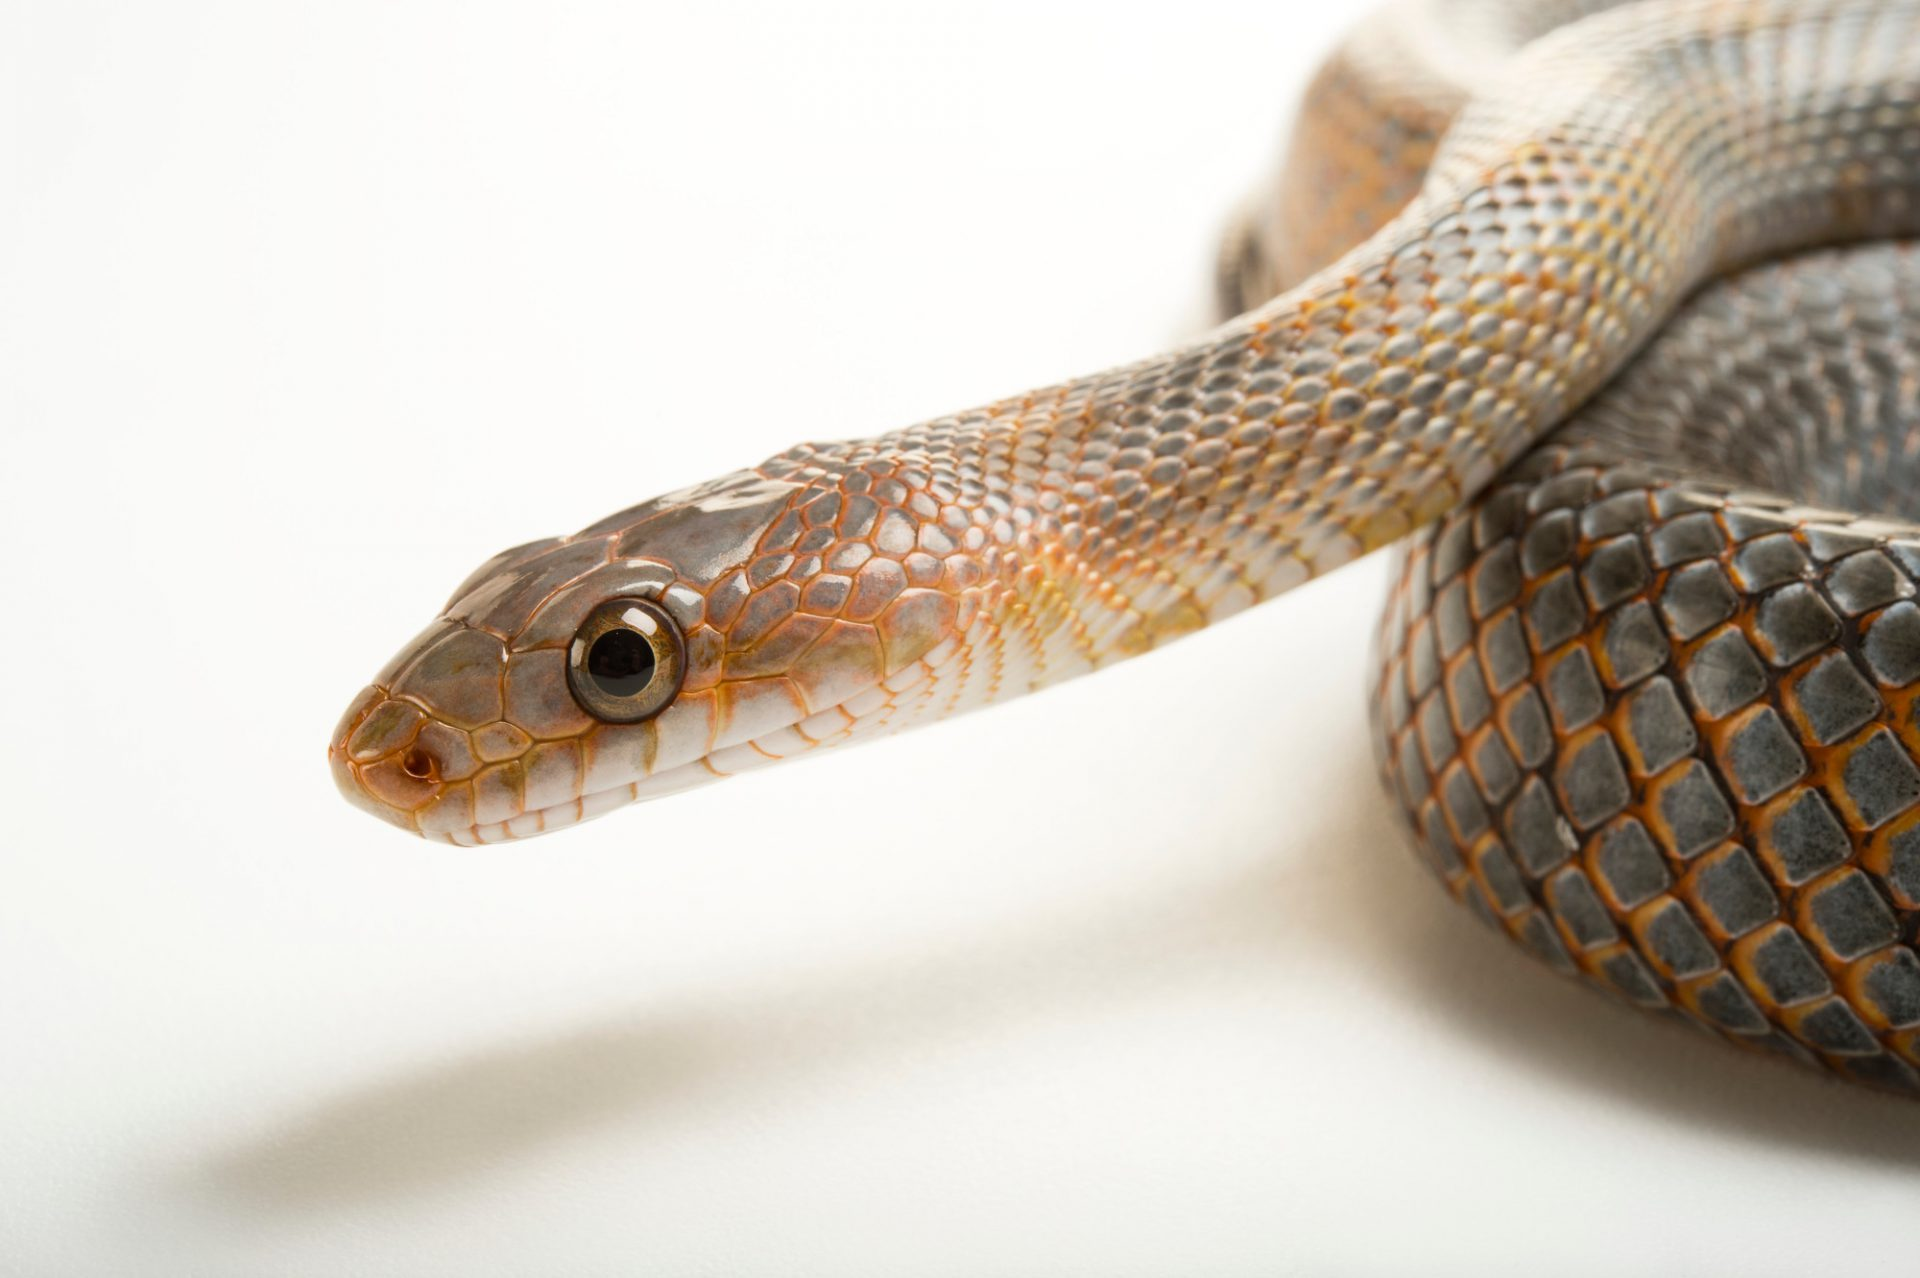 Picture of a Baird's patchnose snake (Salvadora bairdi) at the Caldwell Zoo in Tyler, Texas.